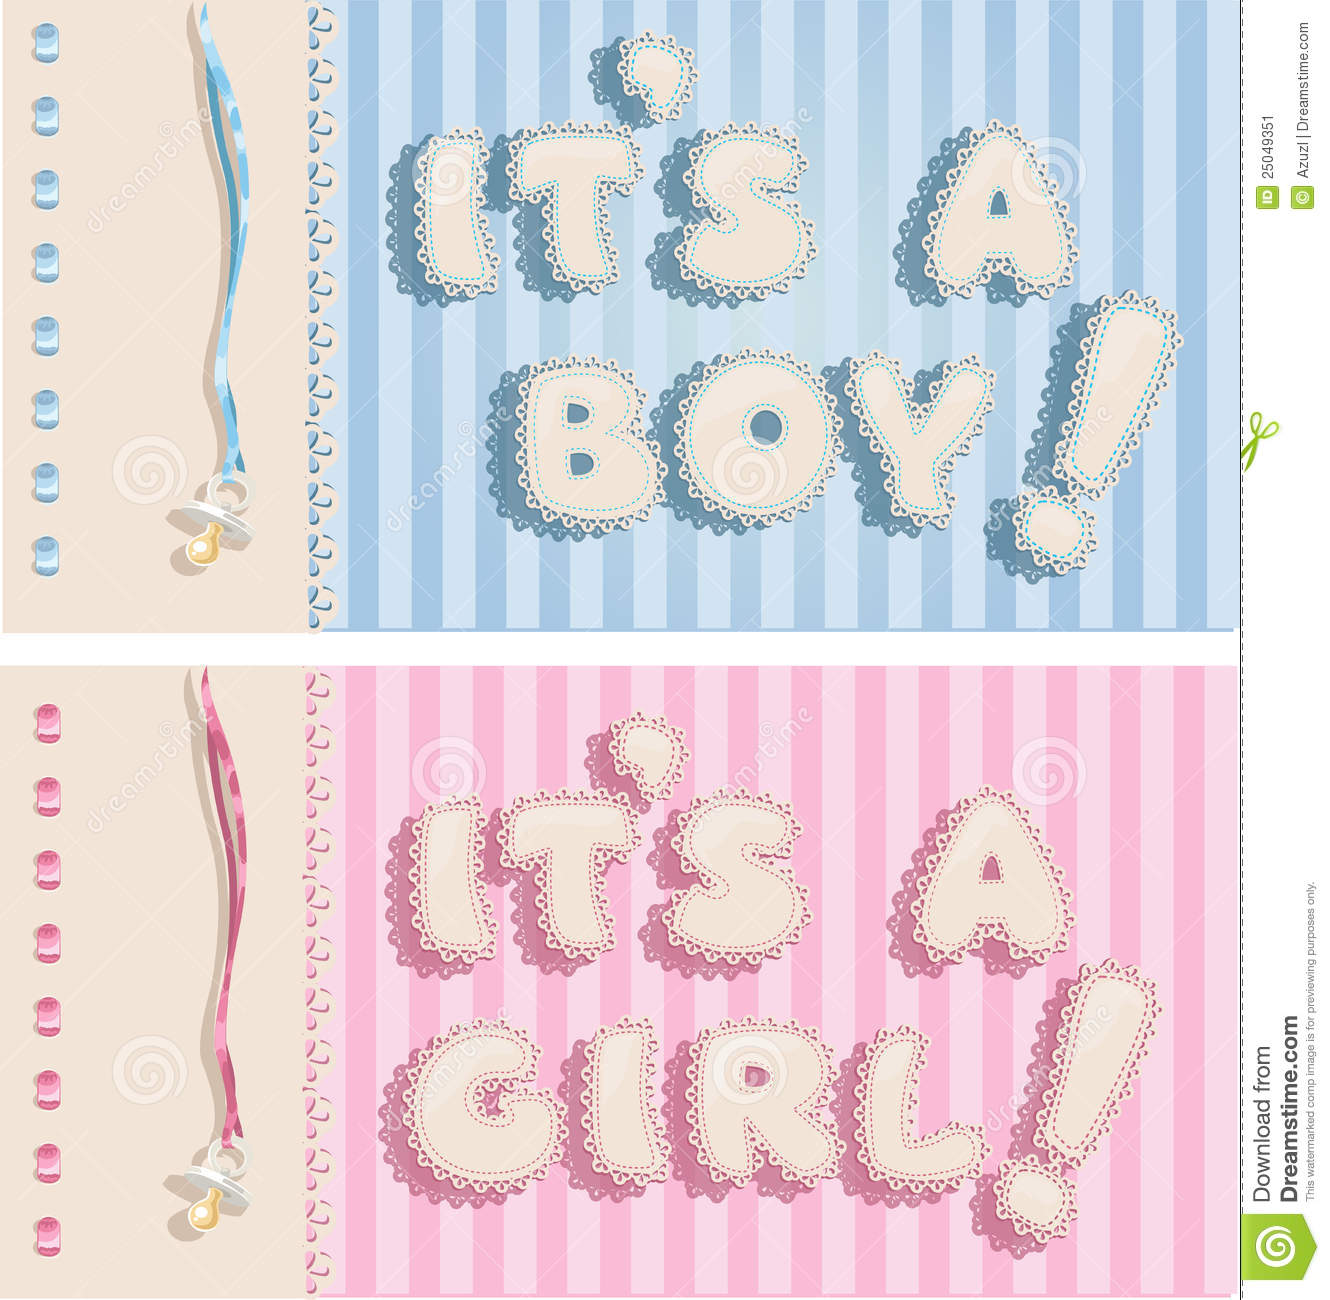 It`s A Boy And It`s A Girl Banners Stock Image - Image: 25049351